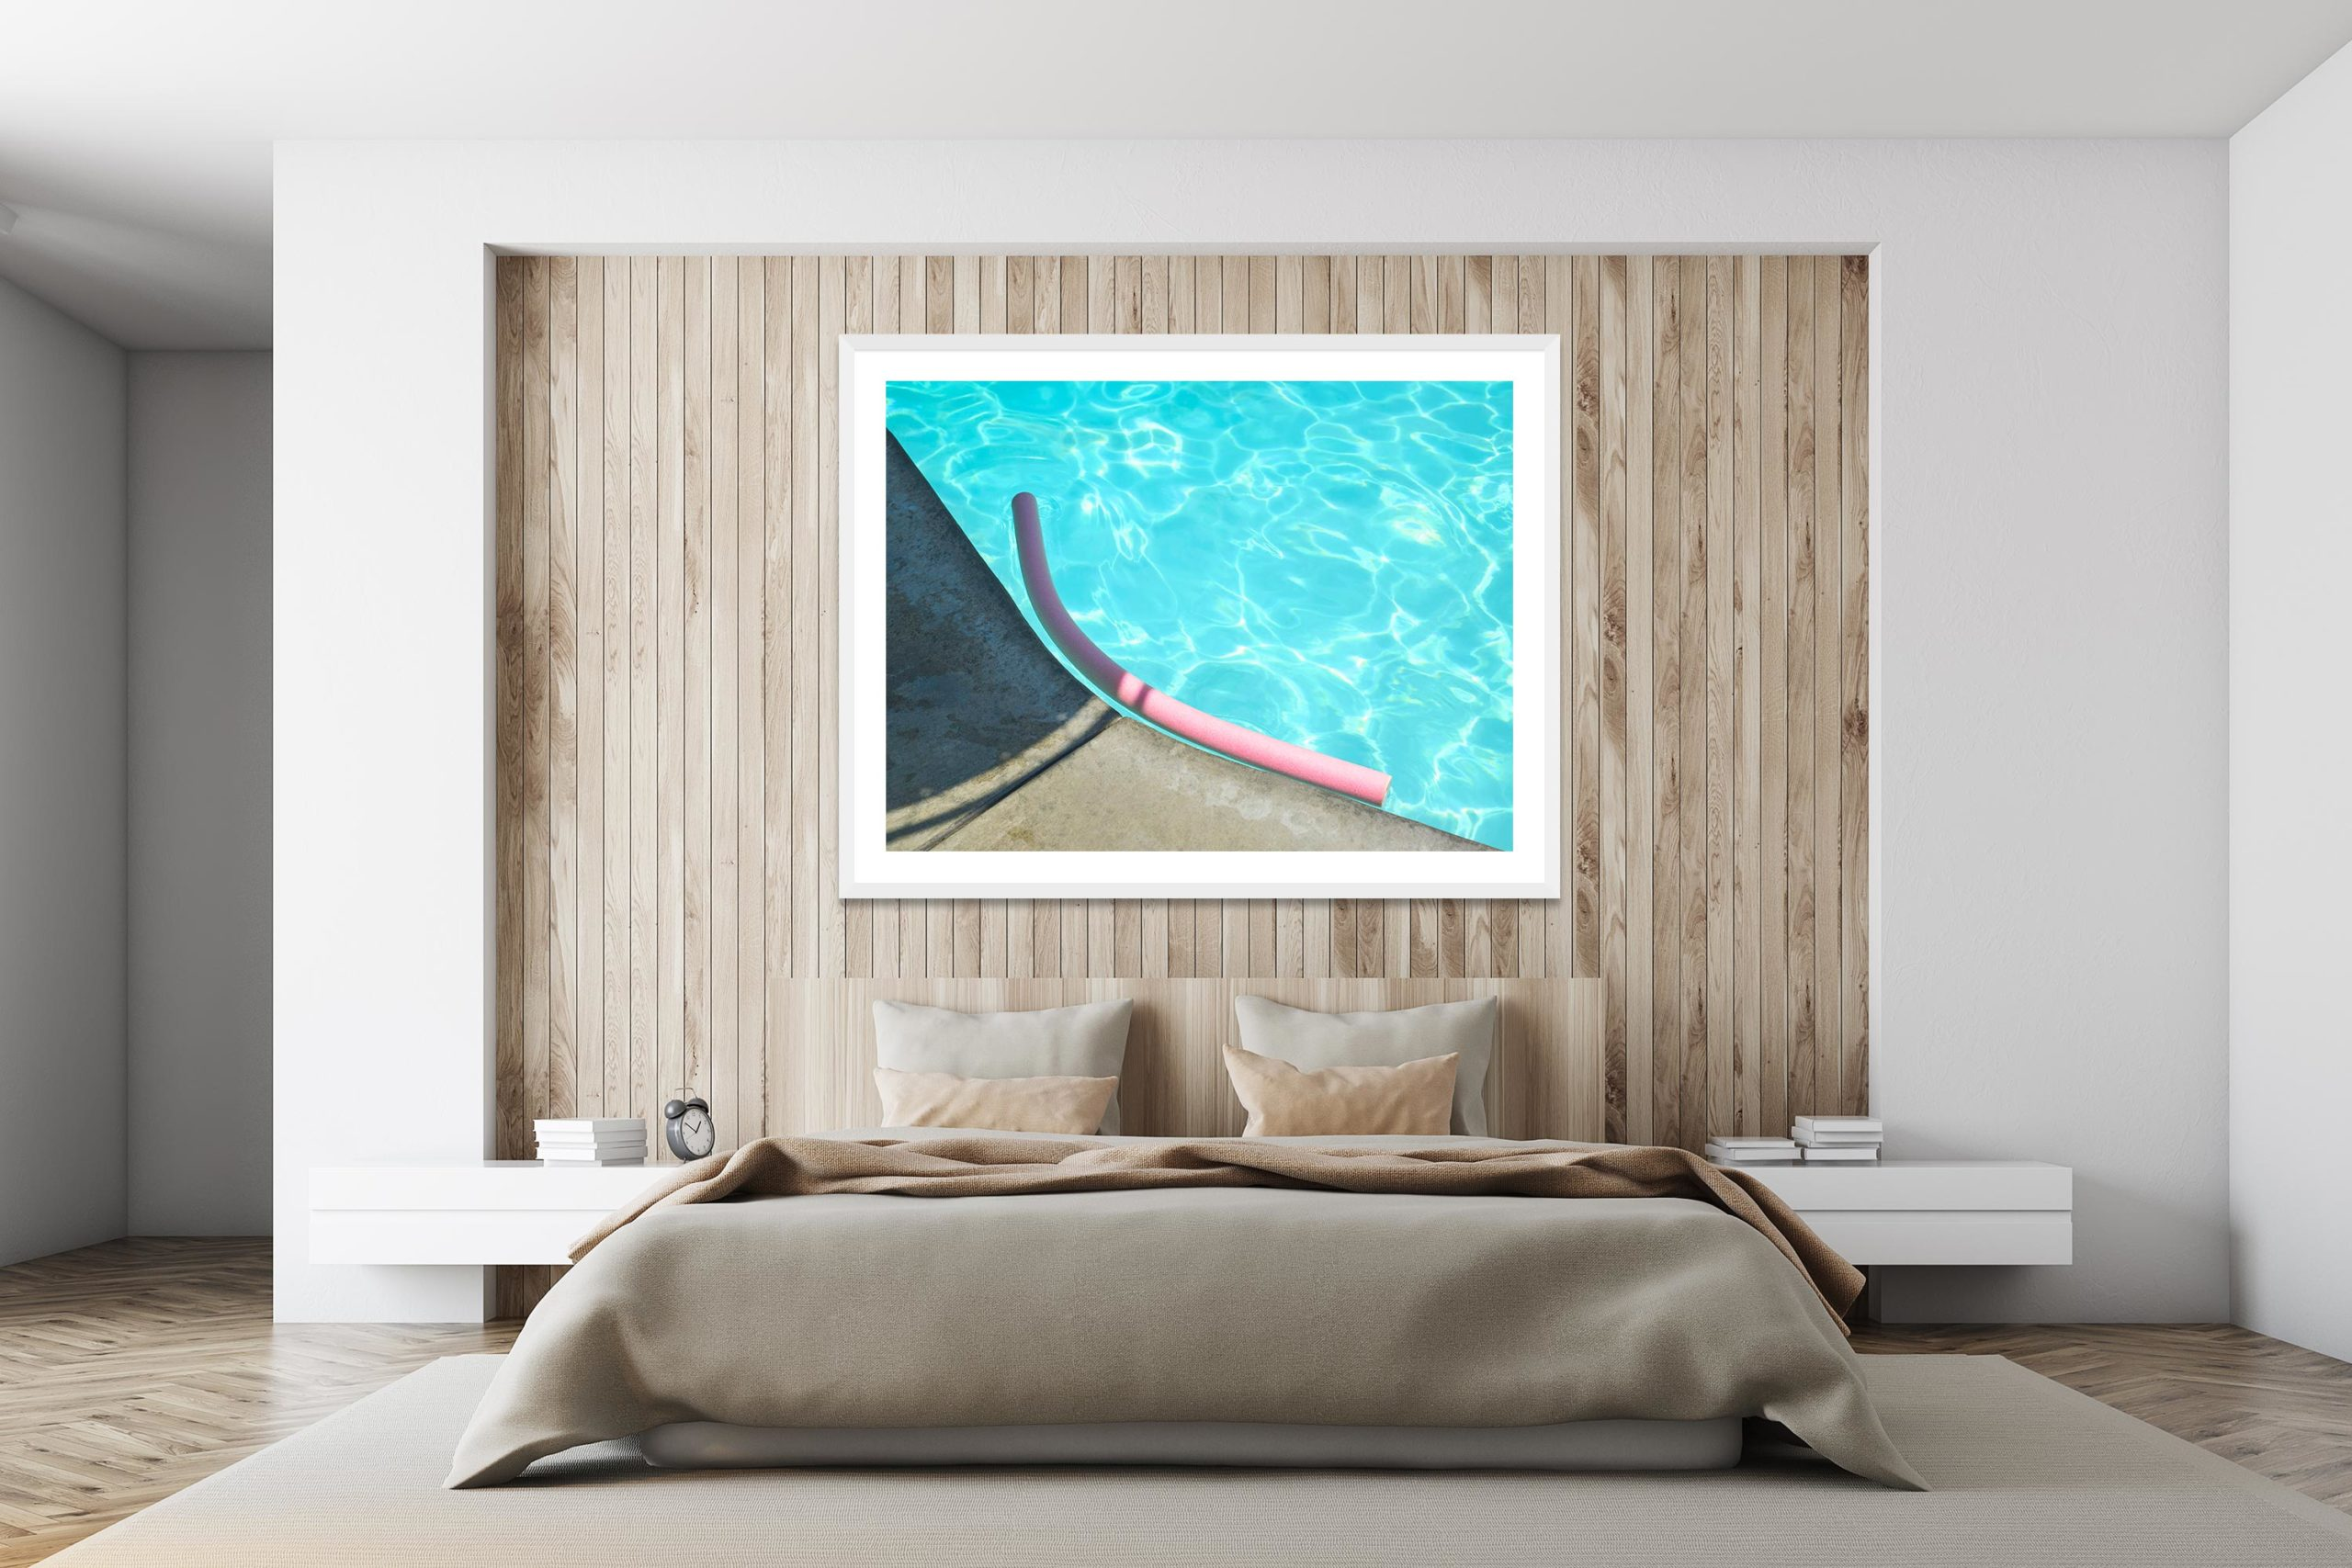 Noodle - White Frame - I Heart Palm Springs Collection - Fine Art Photography by Toby Dixon